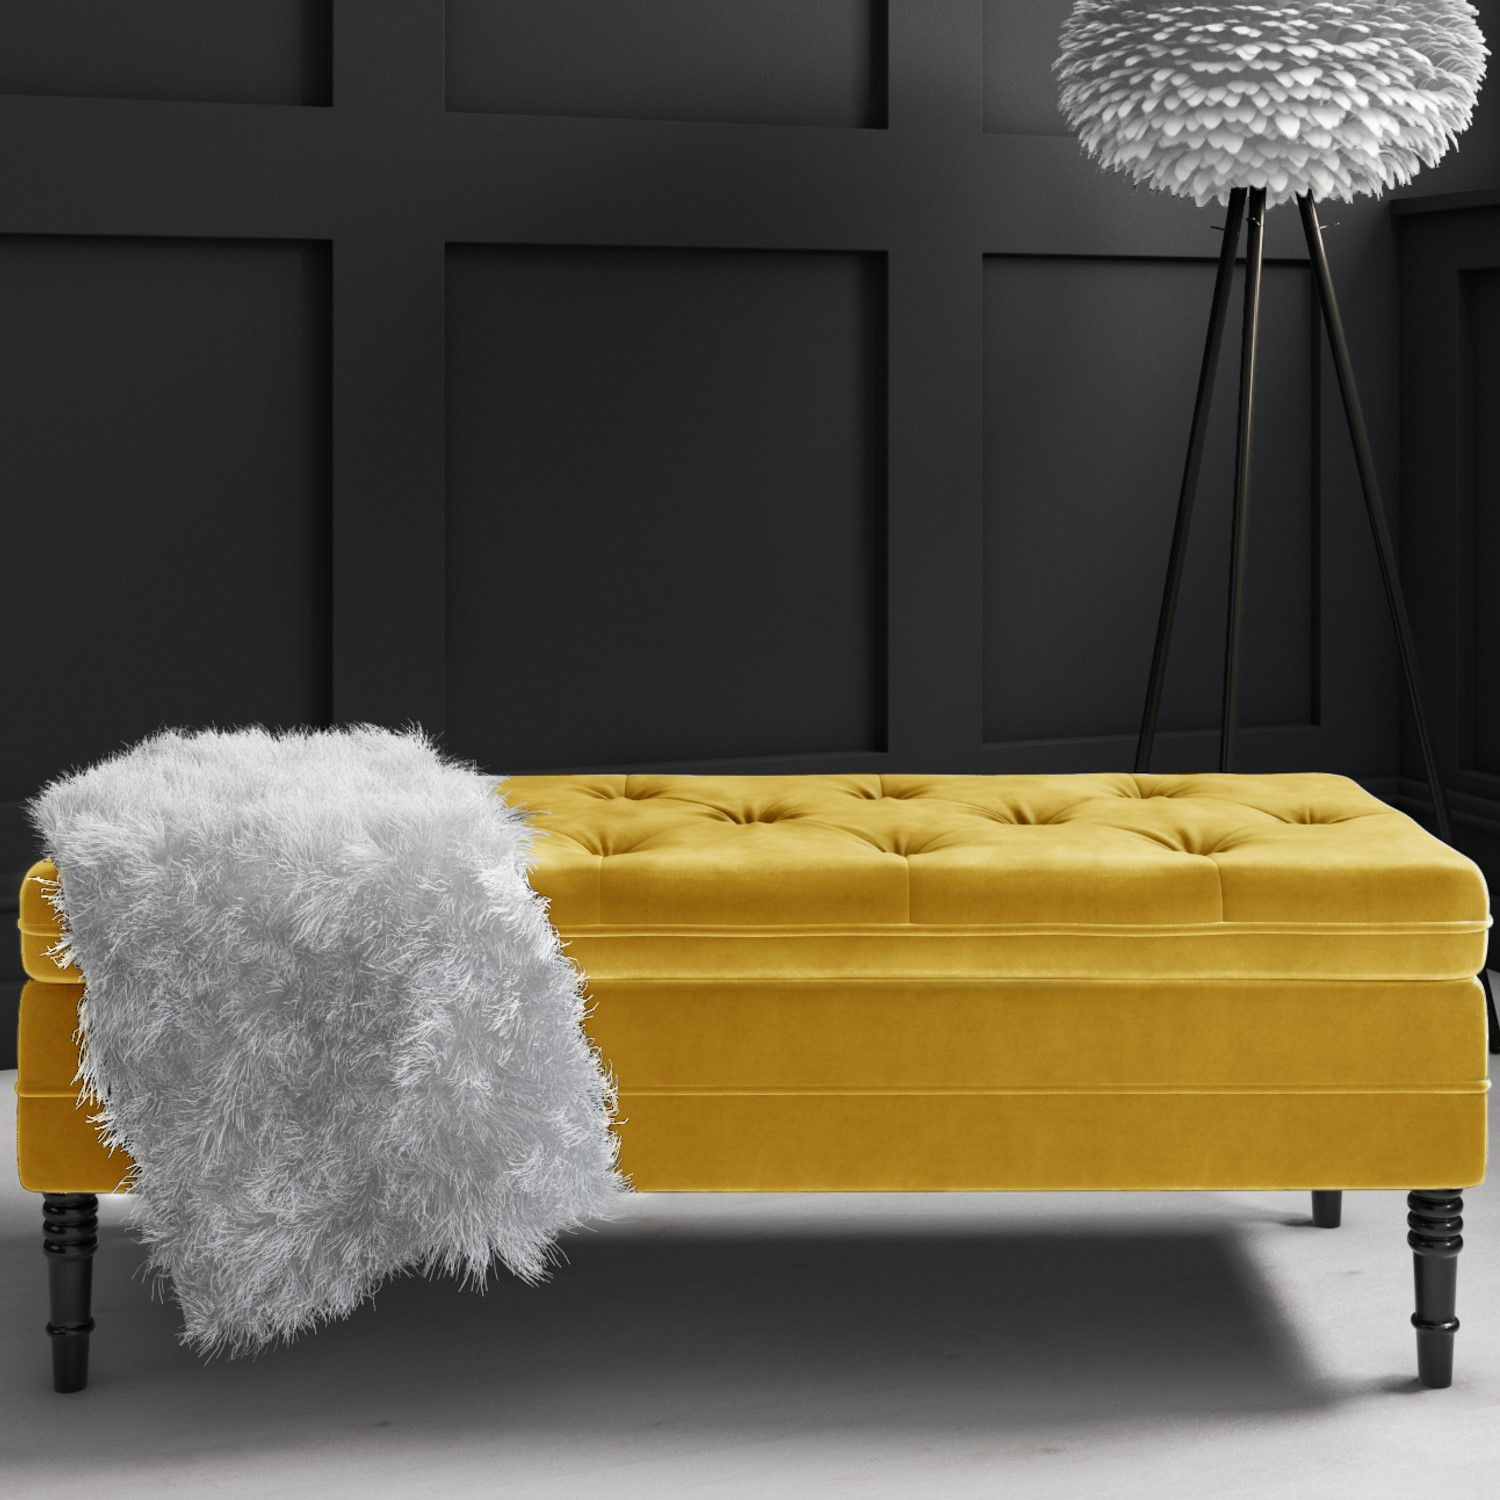 Astonishing Safina Ottoman Storage Bench In Yellow Velvet With Button Detail Machost Co Dining Chair Design Ideas Machostcouk